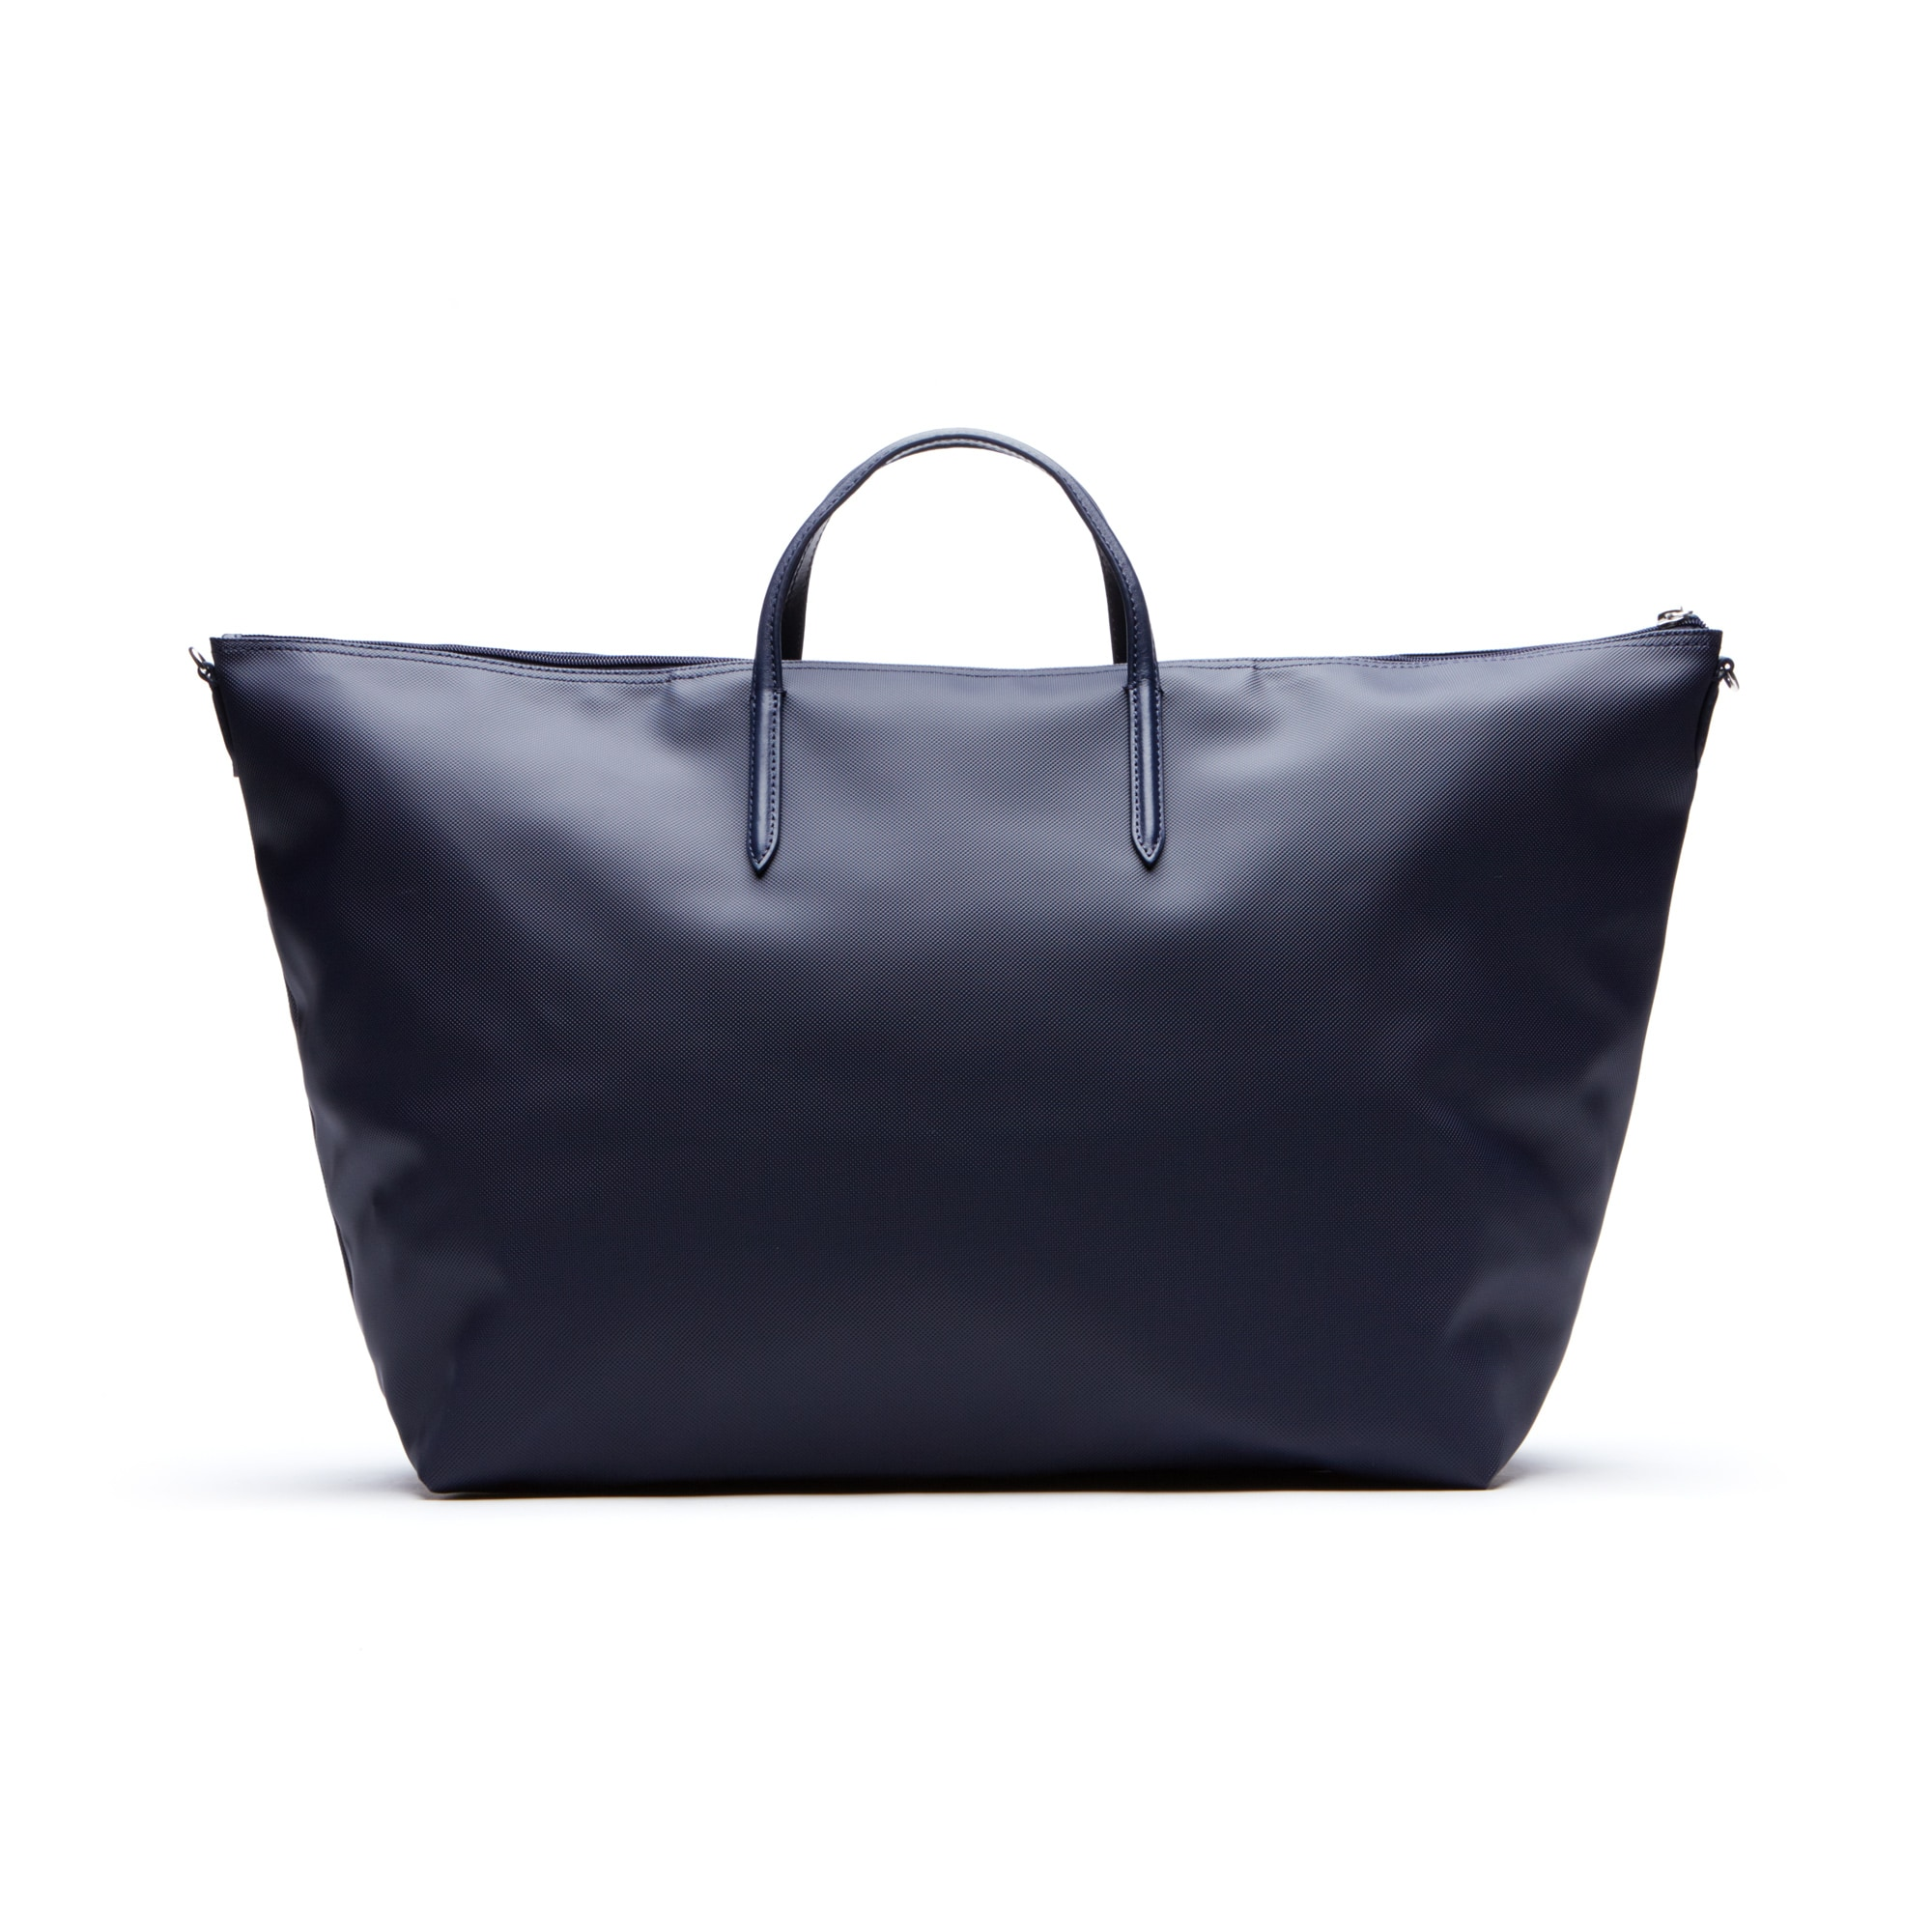 Women's L.12.12 Weekend Tote Bag